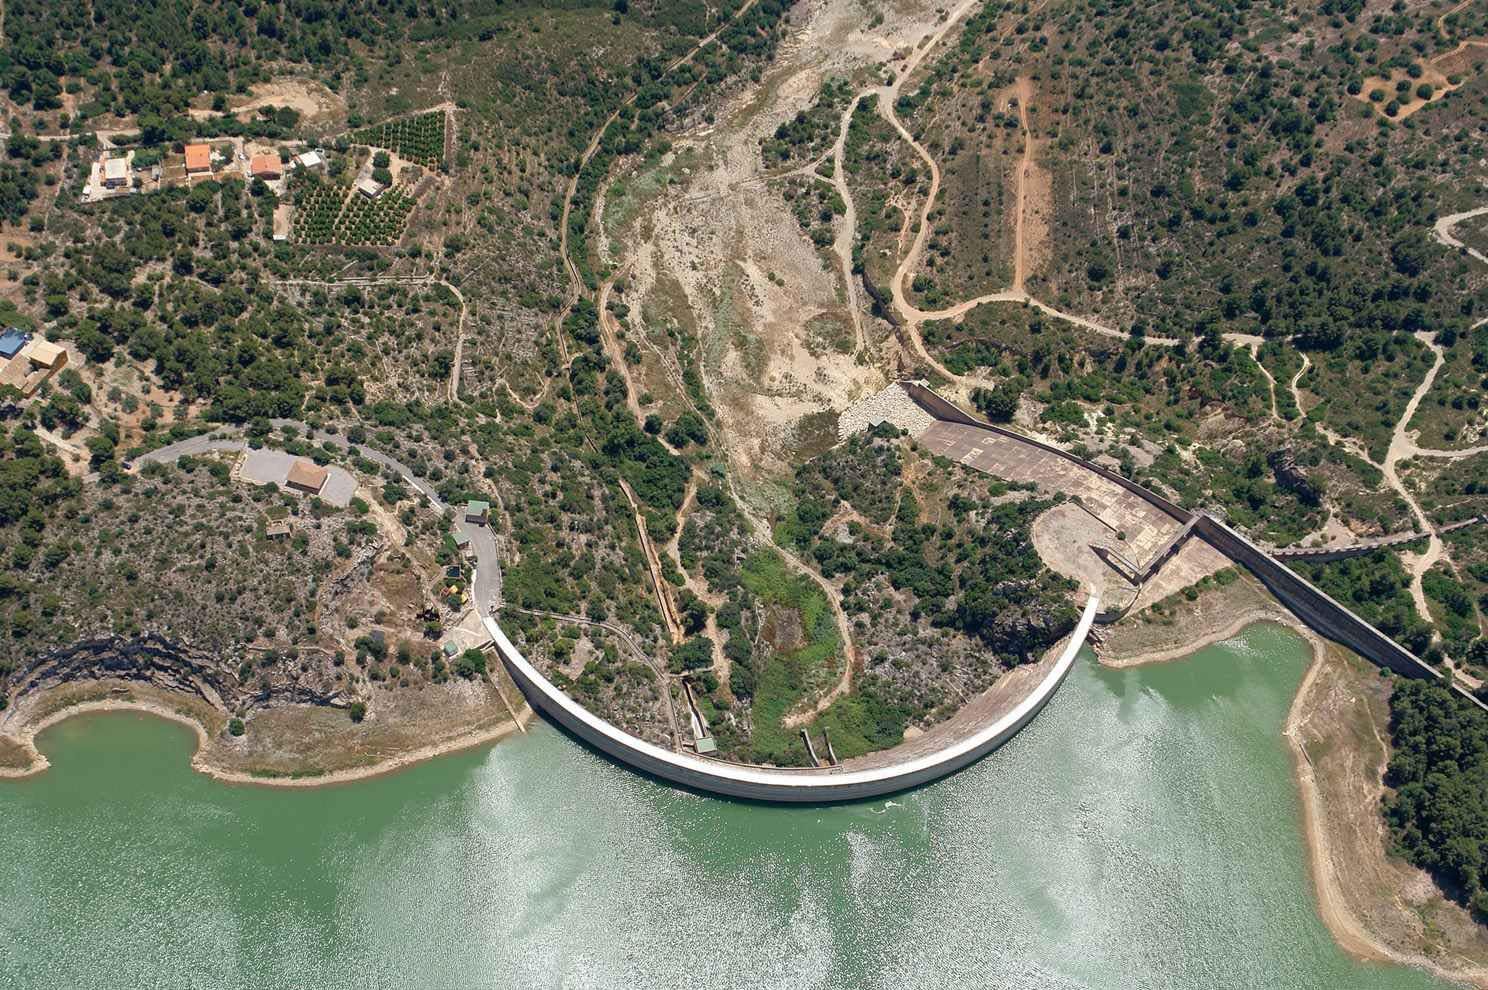 http://zeppeline.es/wp-content/uploads/2015/09/vista-aerea-de-embalse-video-fotografia-aerea-31.jpg